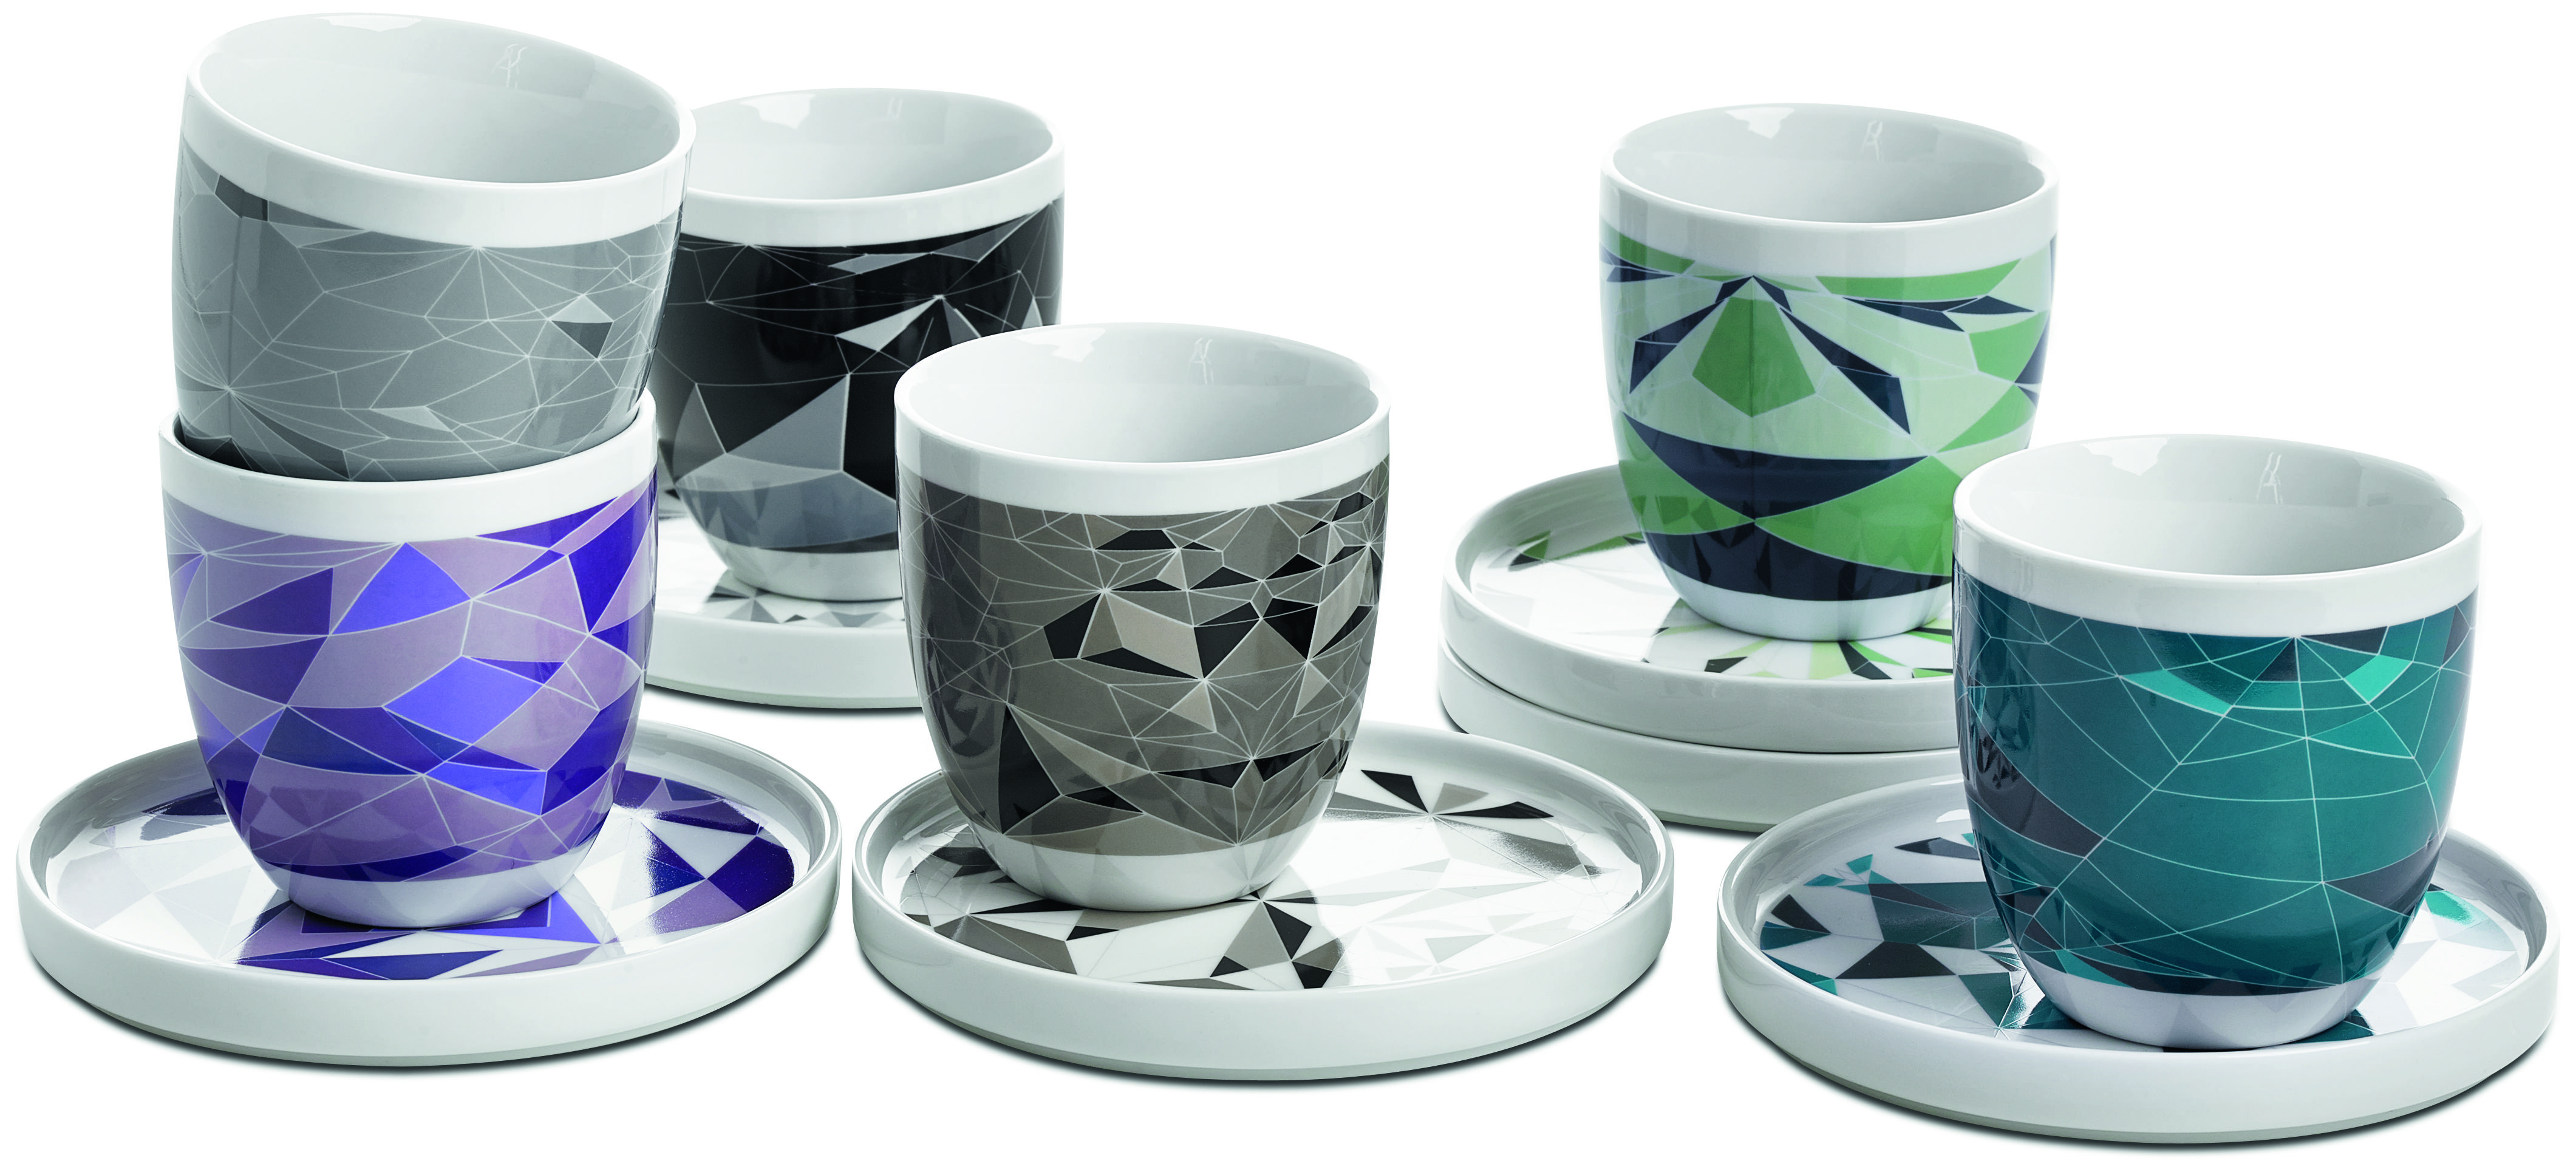 Fusion coffee cups